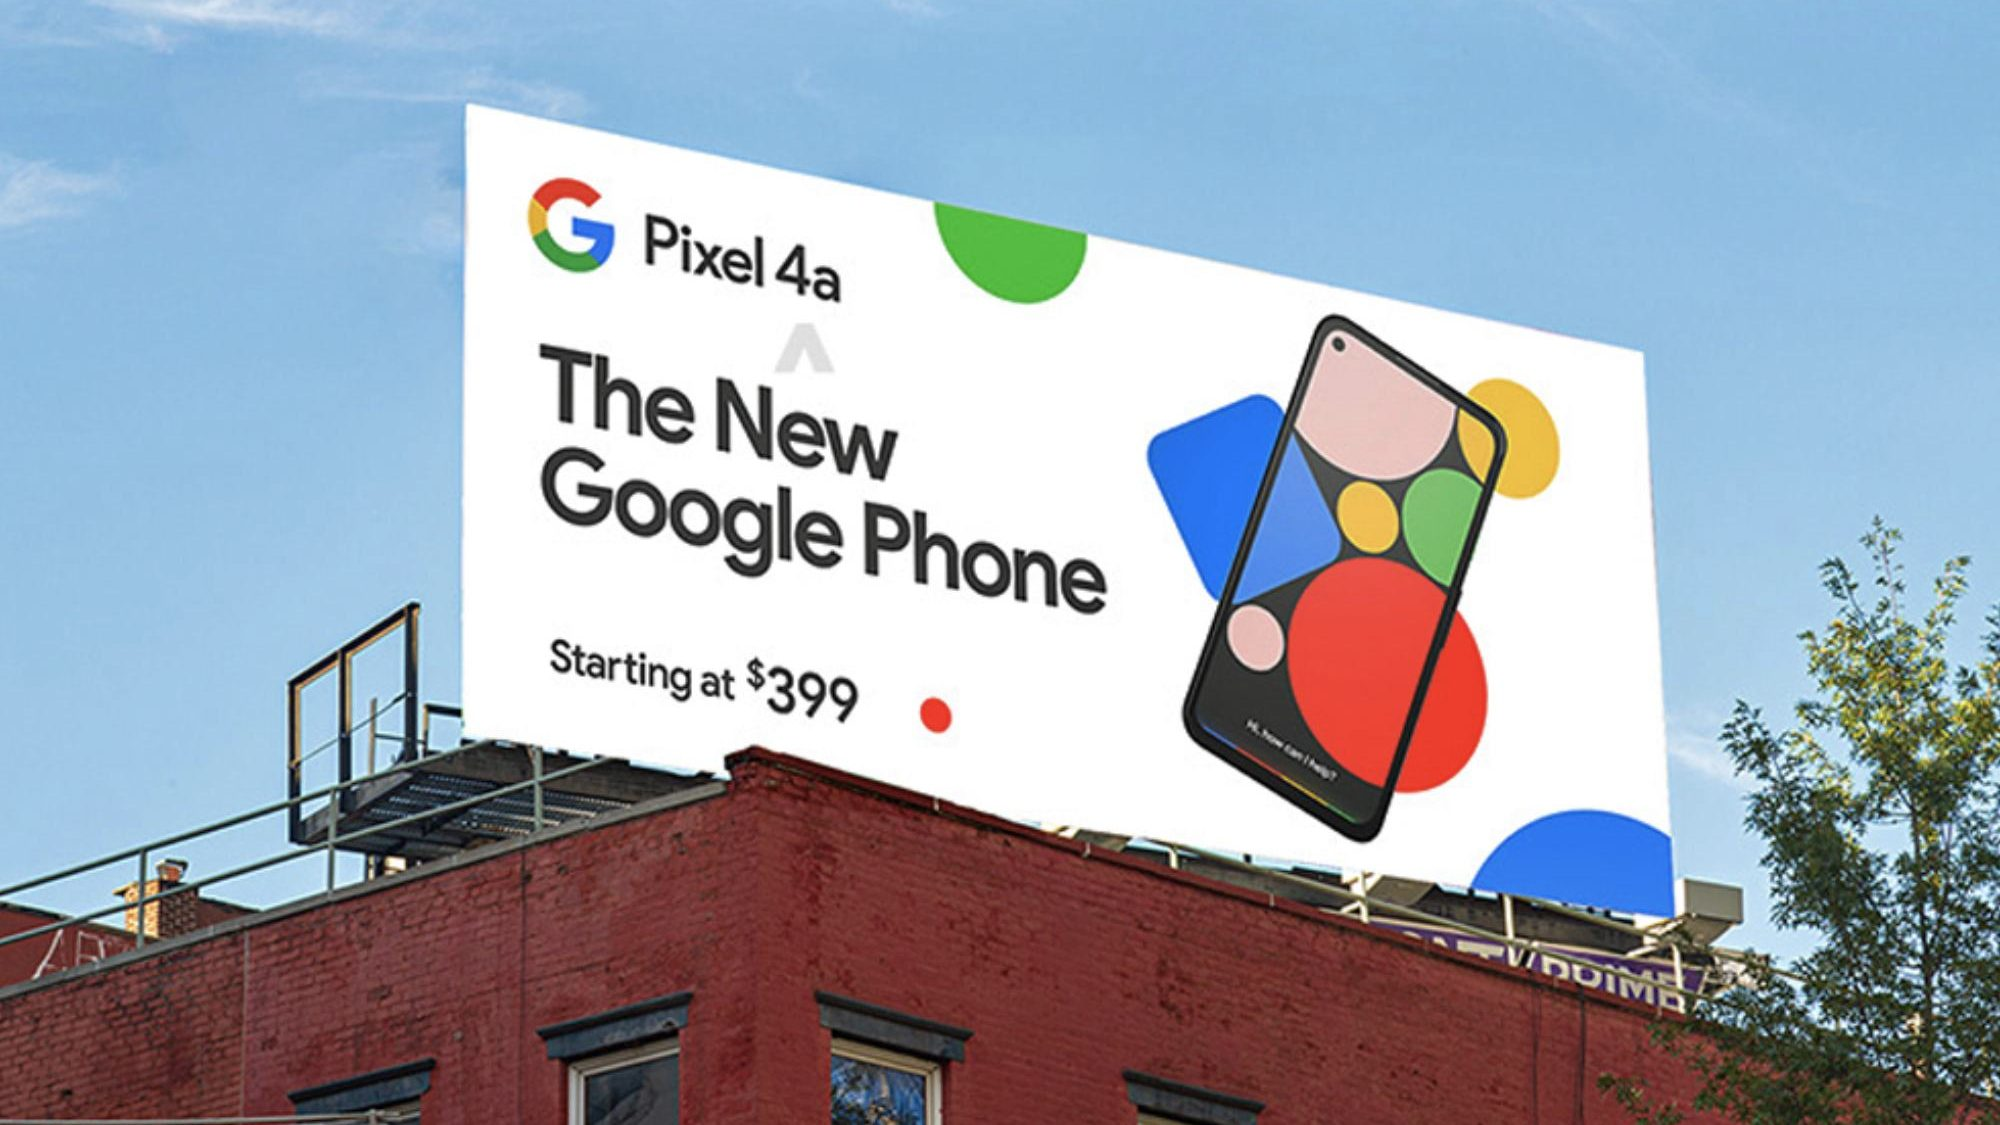 Google Pixel 4a might be released in early June at Android Beta event